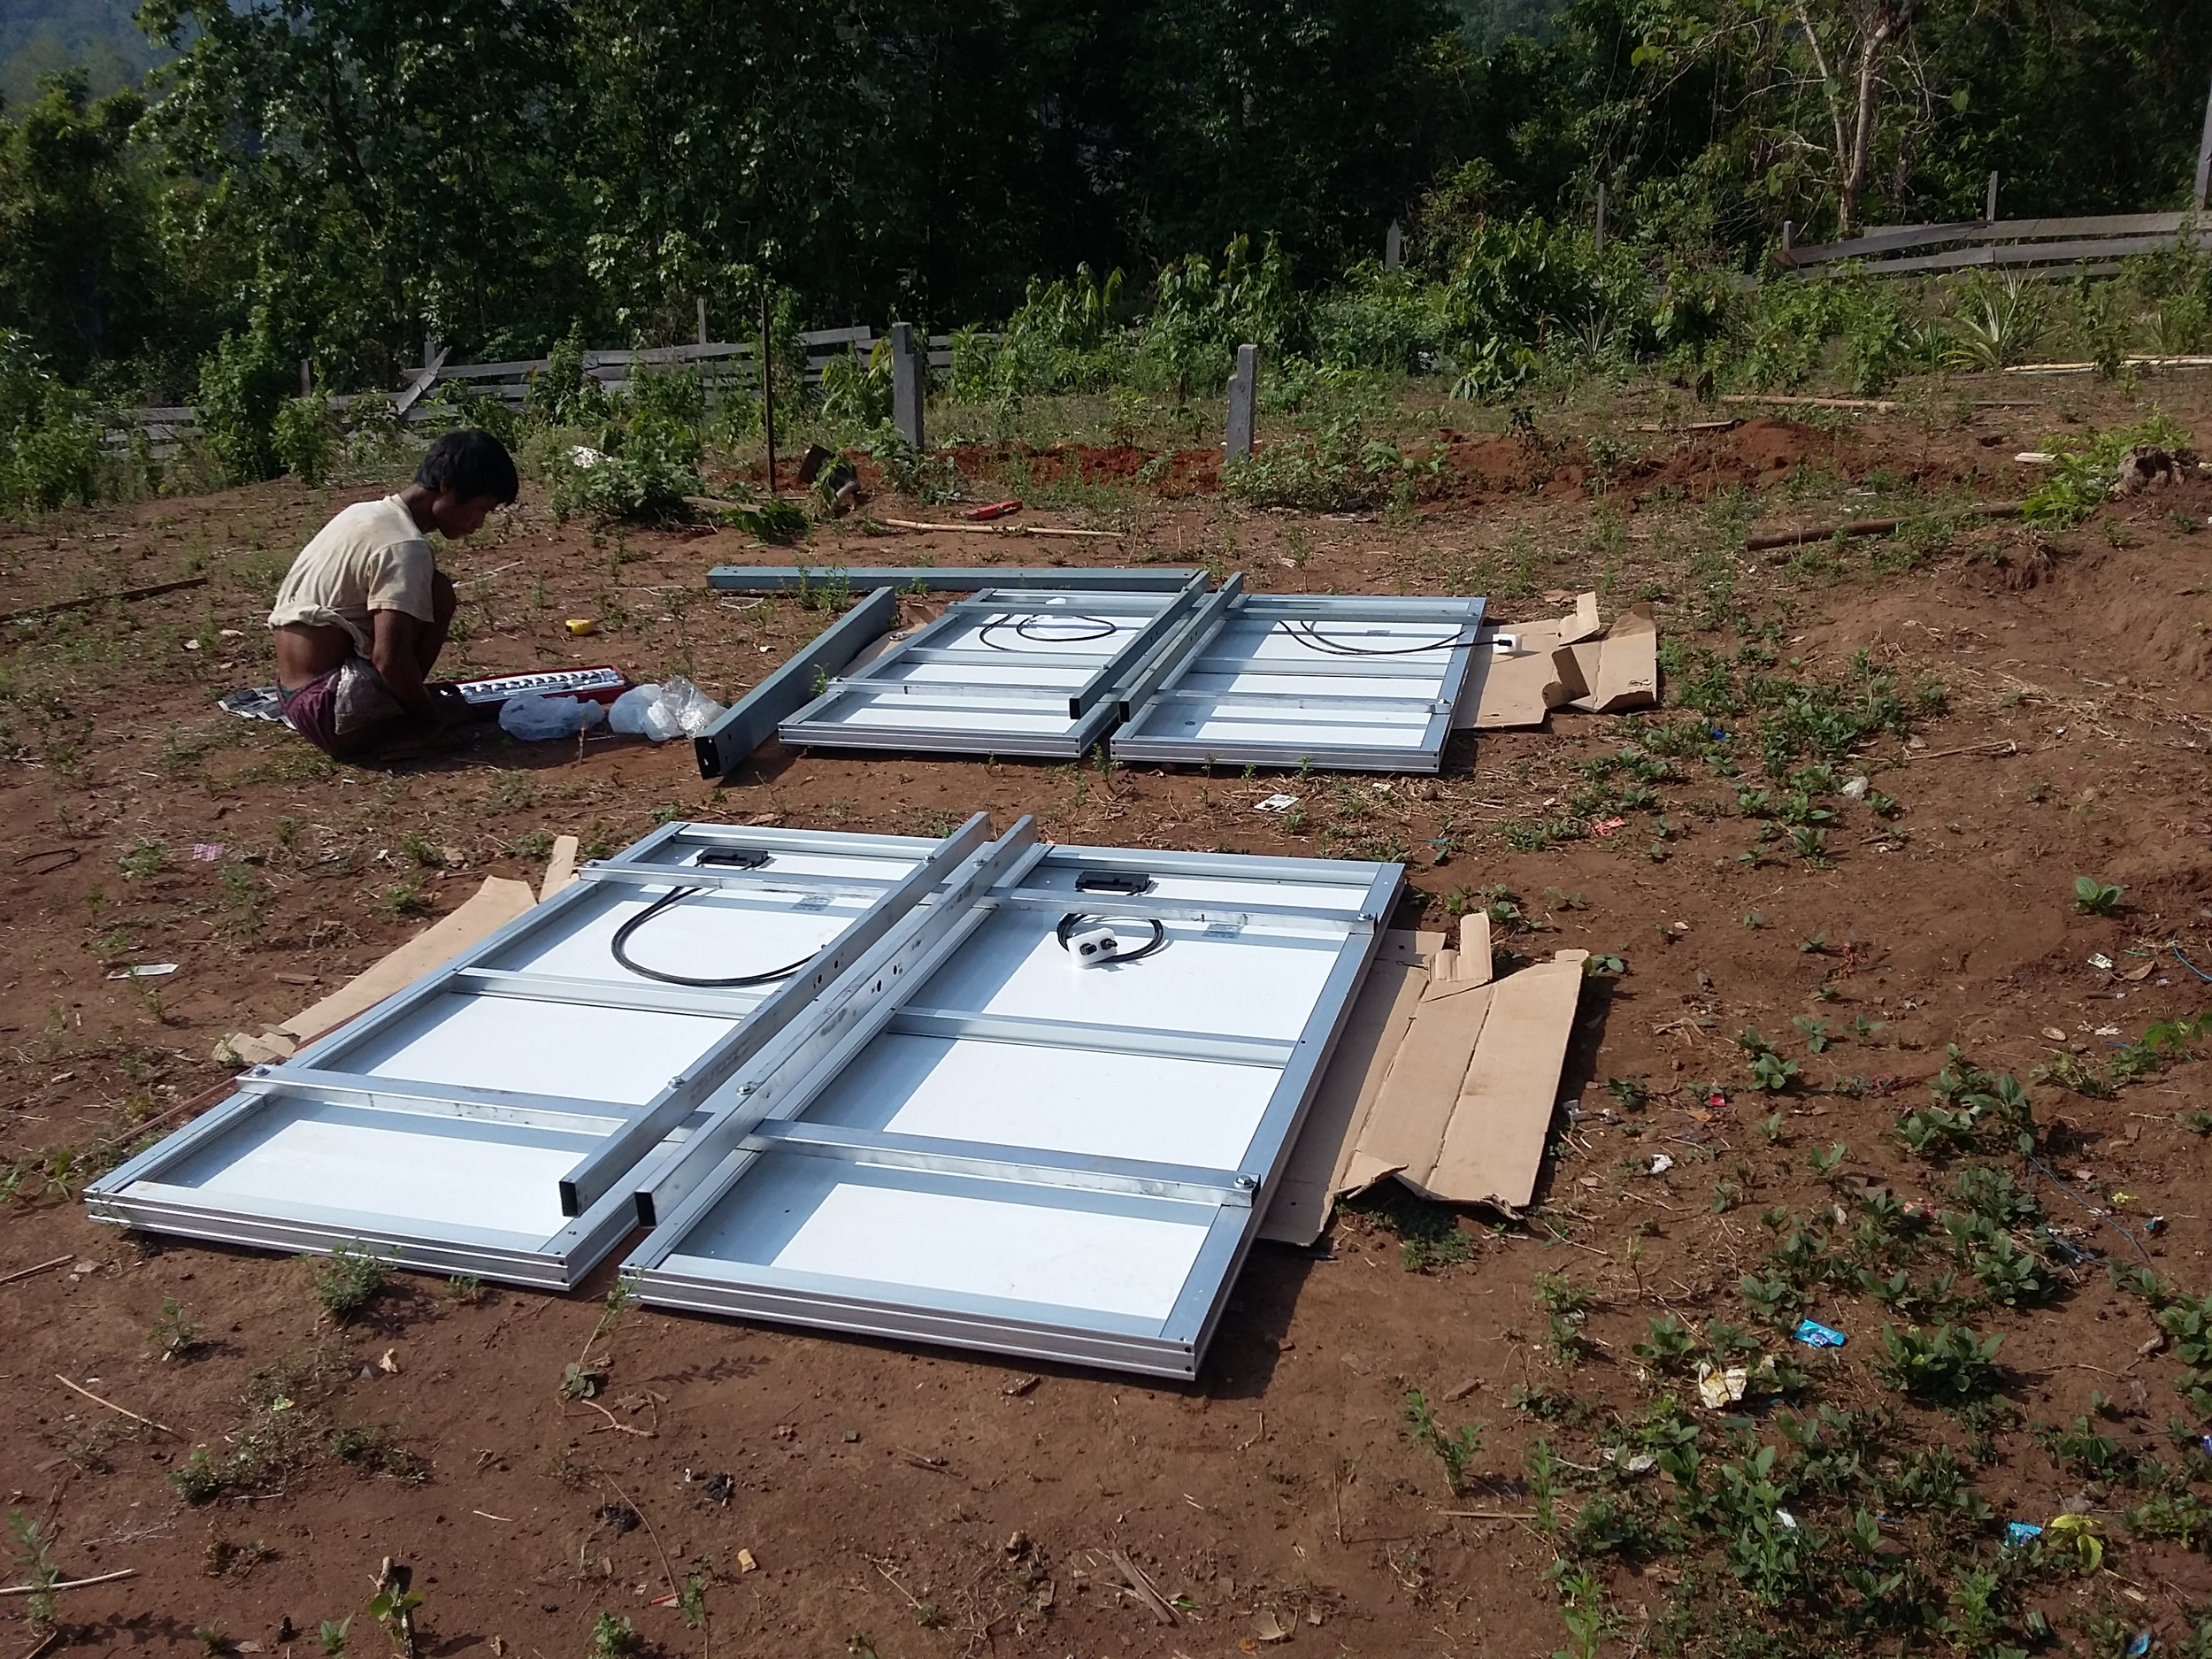 Connecting solar panels to the frame